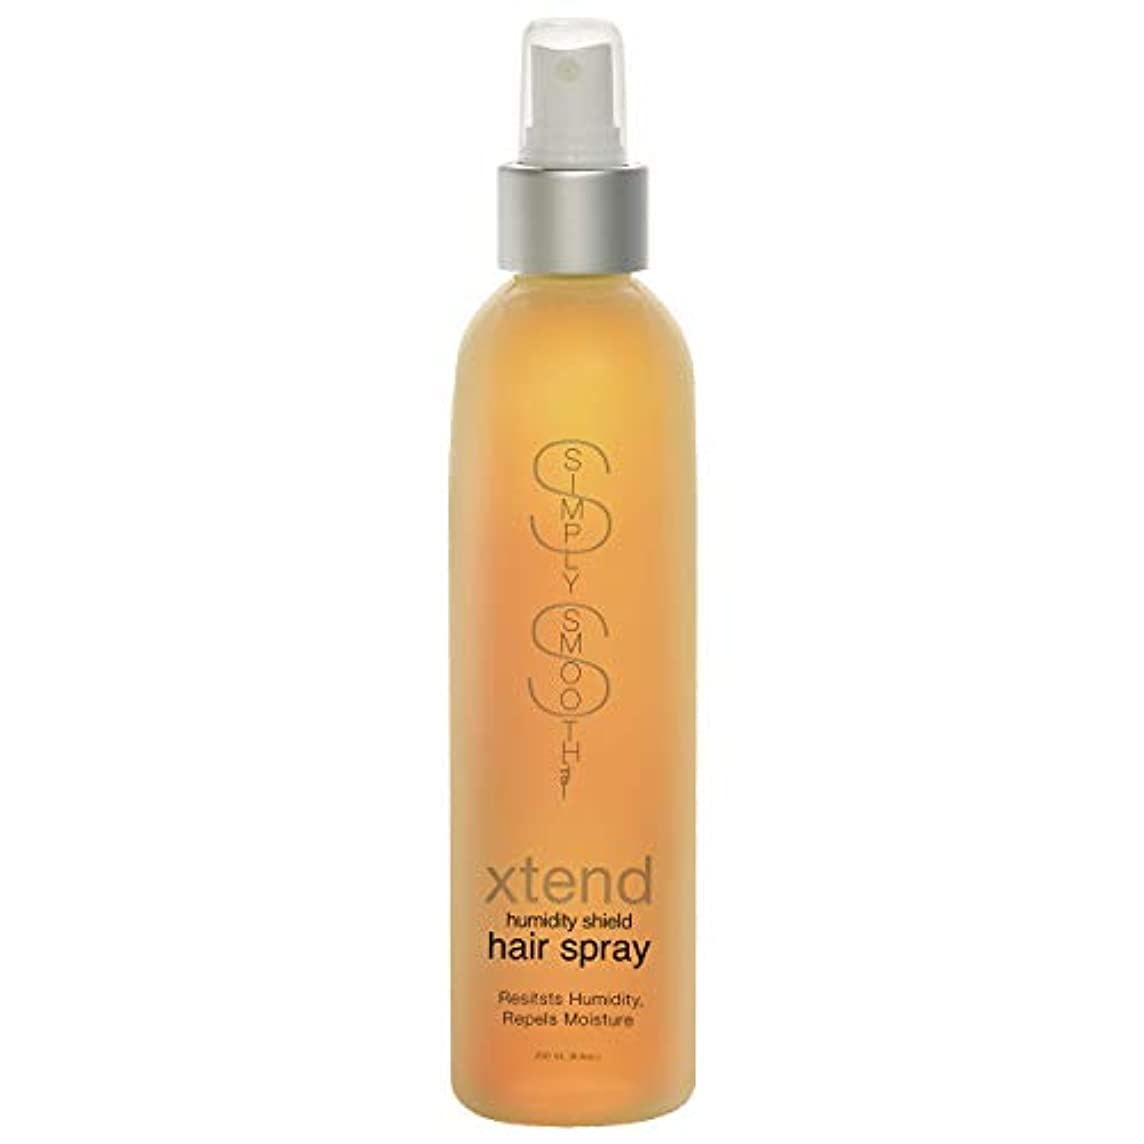 干ばつカブボイドSimply Smooth Xtend Humidity Shield Hairspray(Non-Aero) 8 oz. (並行輸入品)